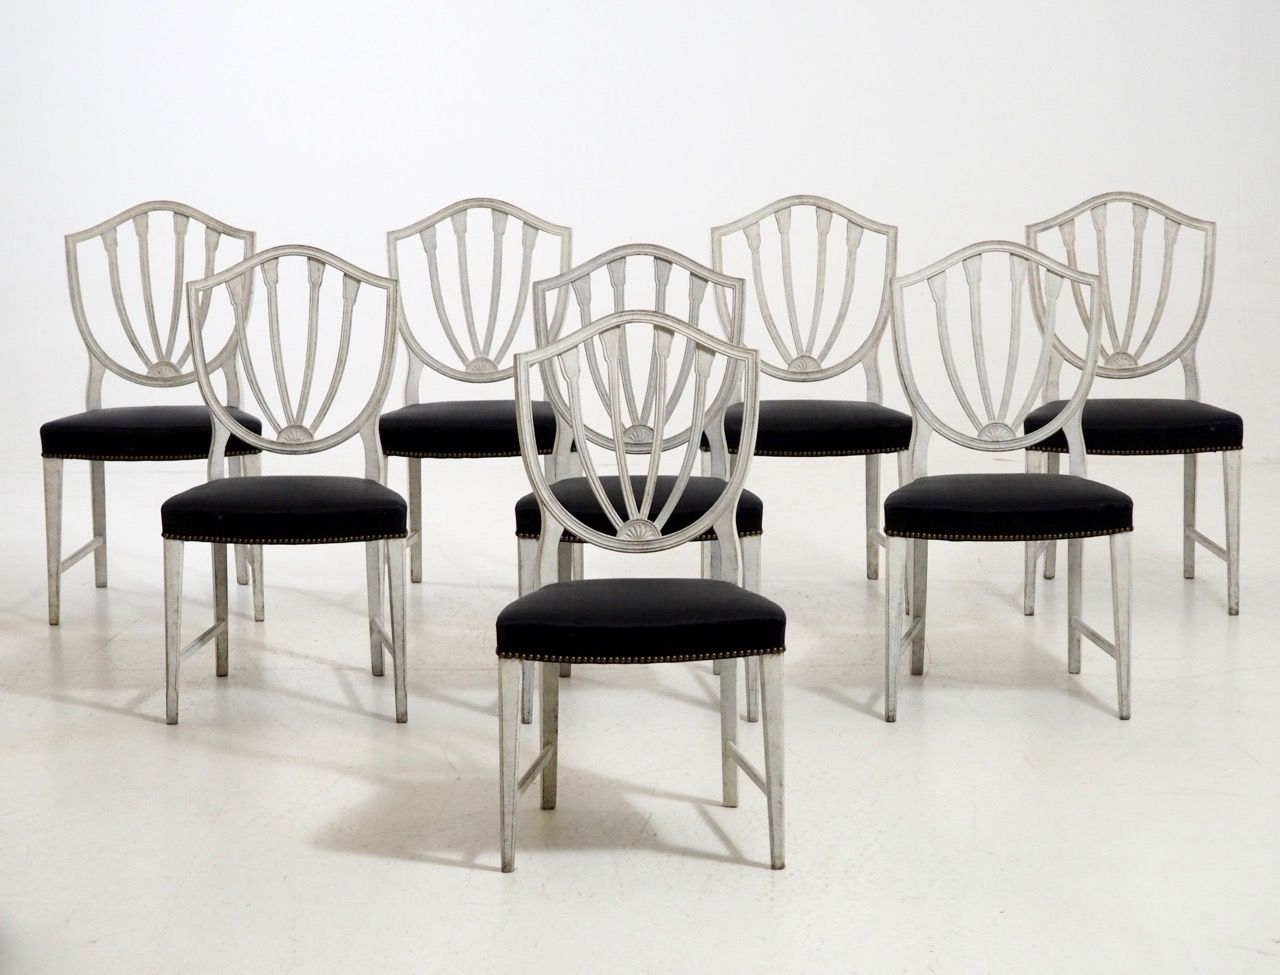 Antique Chairs with Horsehair, Set of 8 - Antique Chairs With Horsehair, Set Of 8 For Sale At Pamono